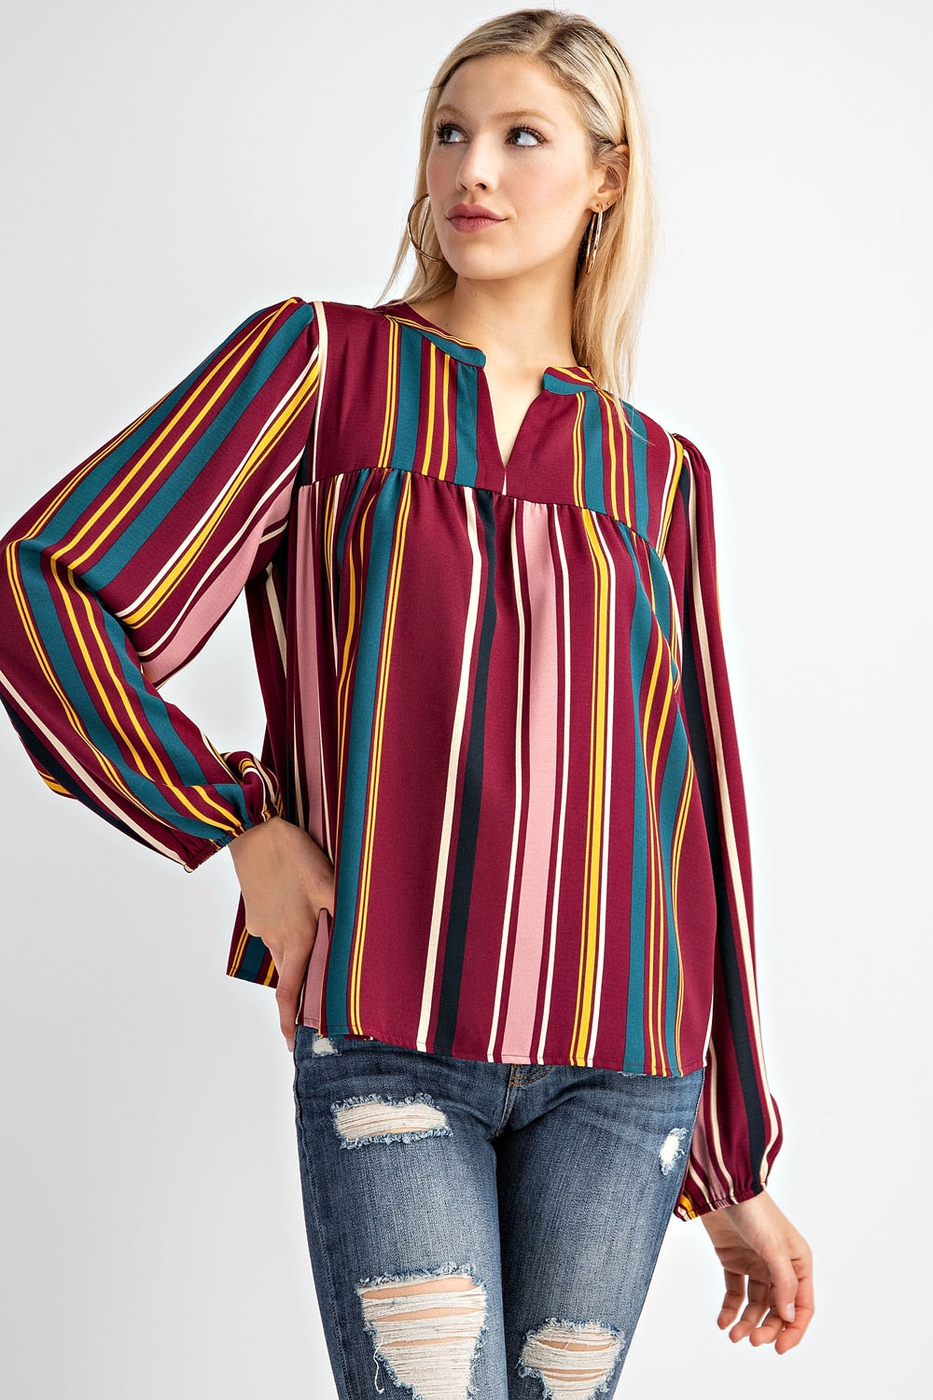 VERTICAL STRIPE JACQUARD BLOUSE TOP - orangeshine.com